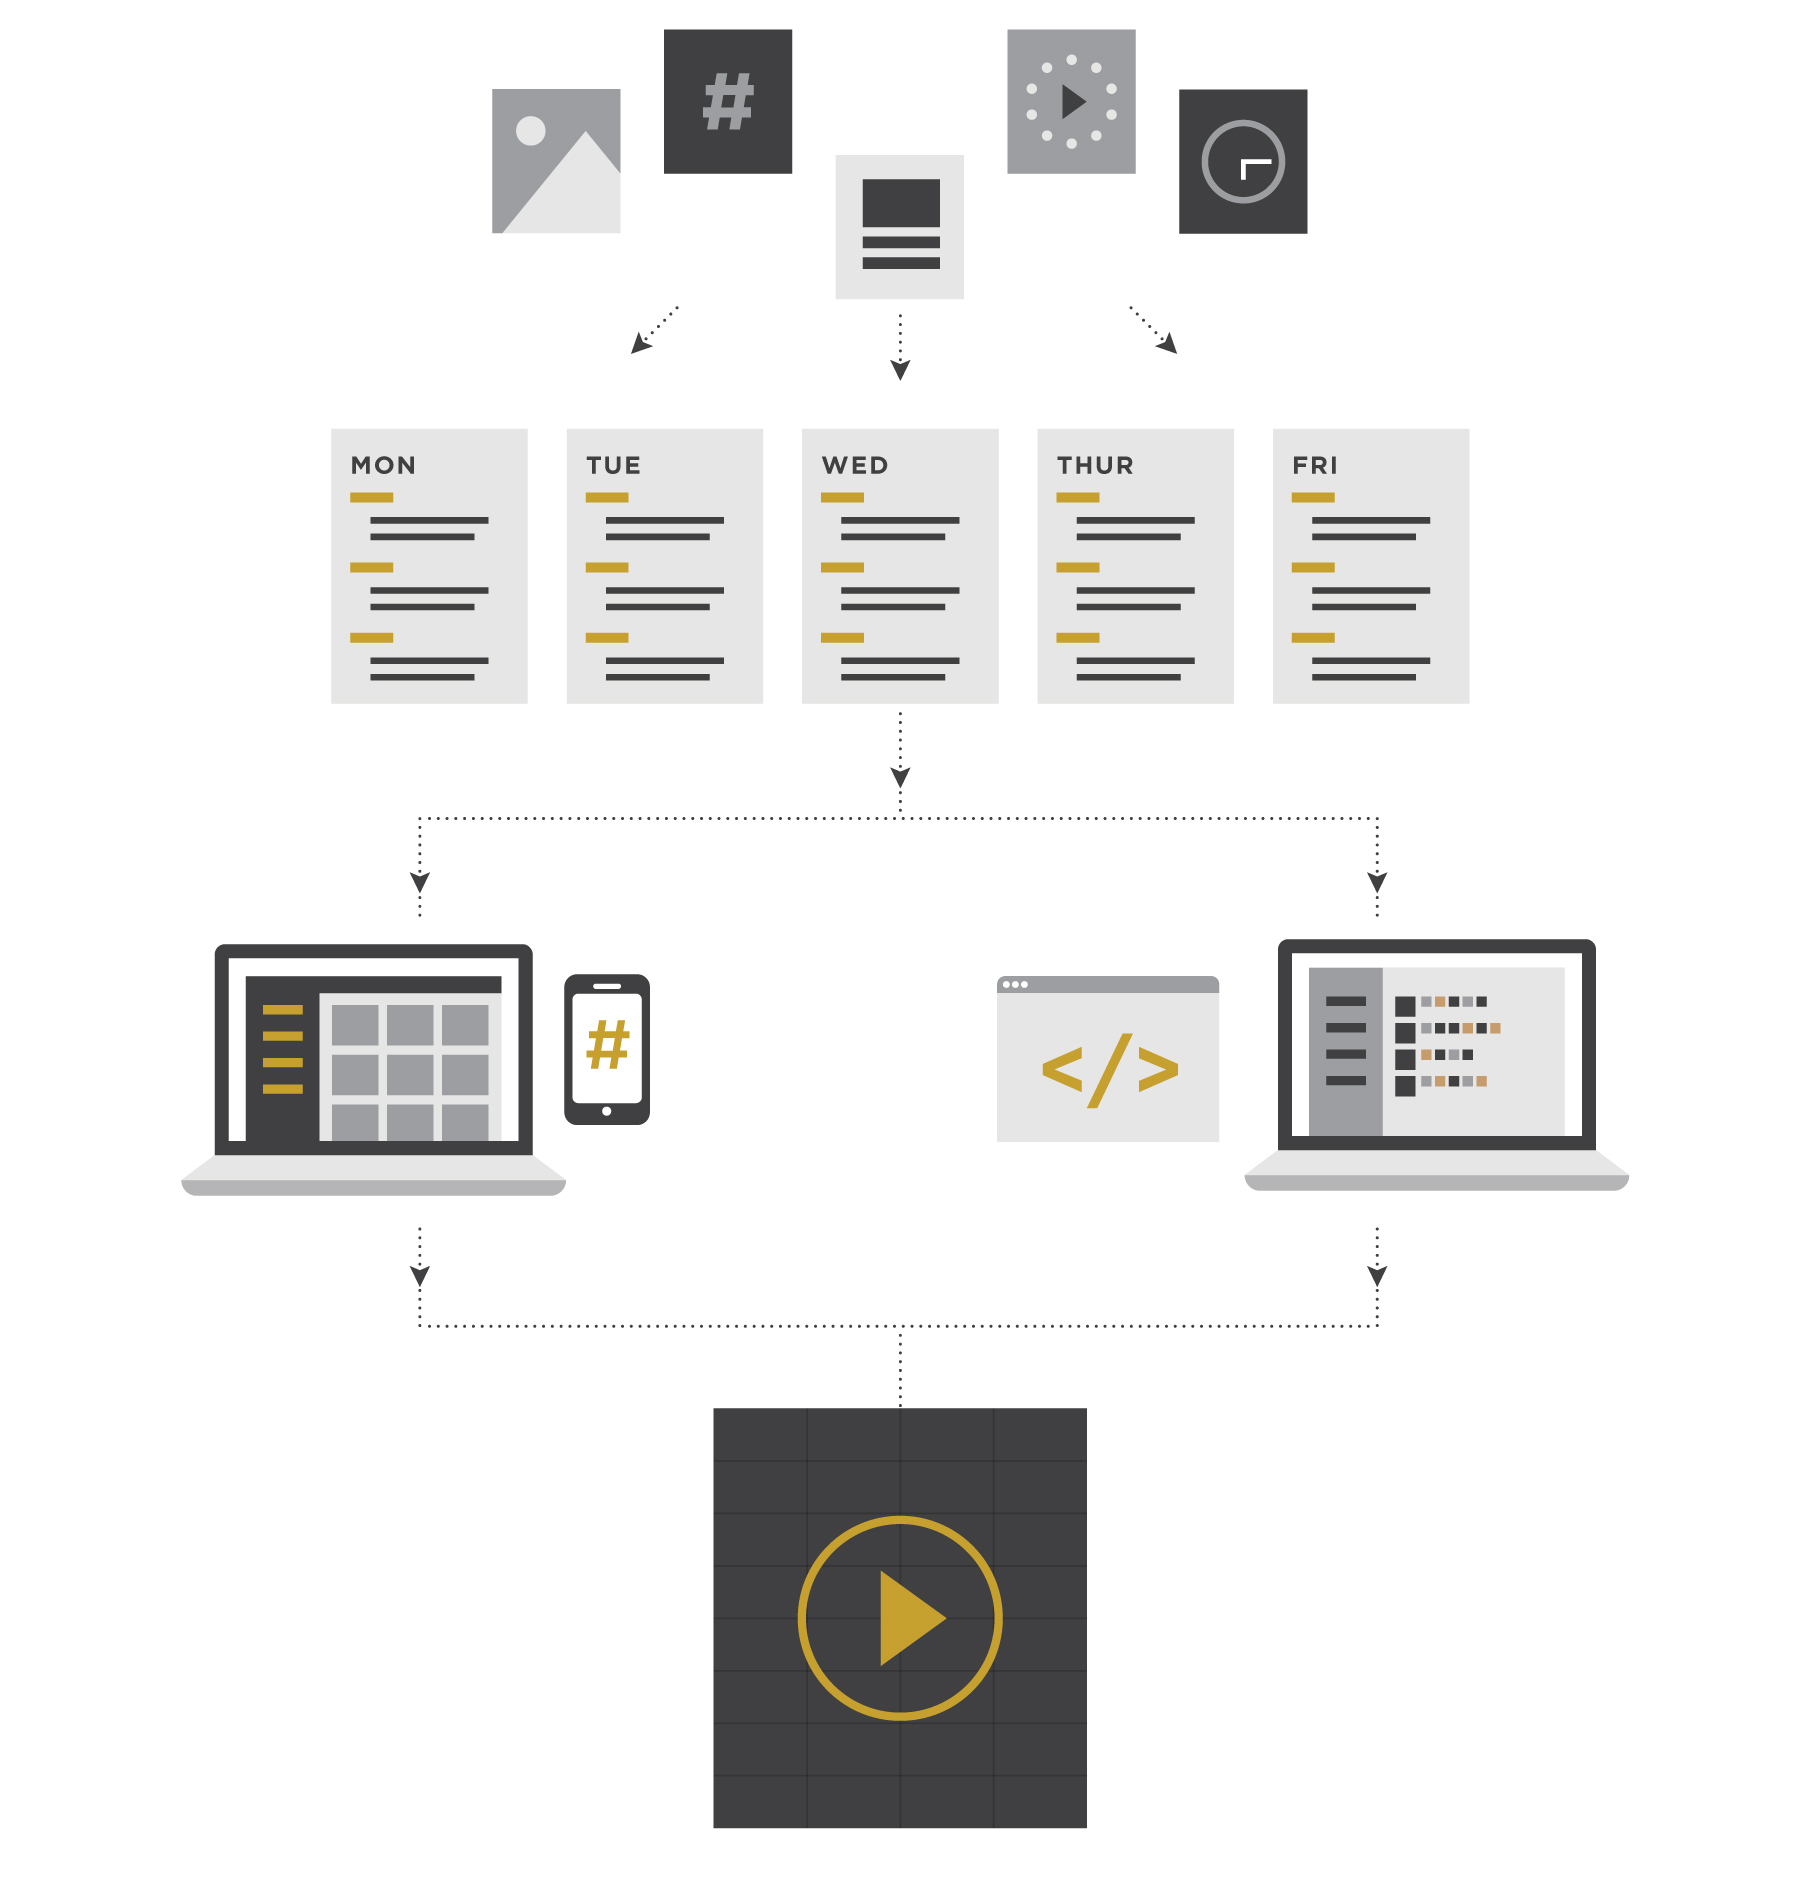 koin-media-wall-process-infographic.jpg